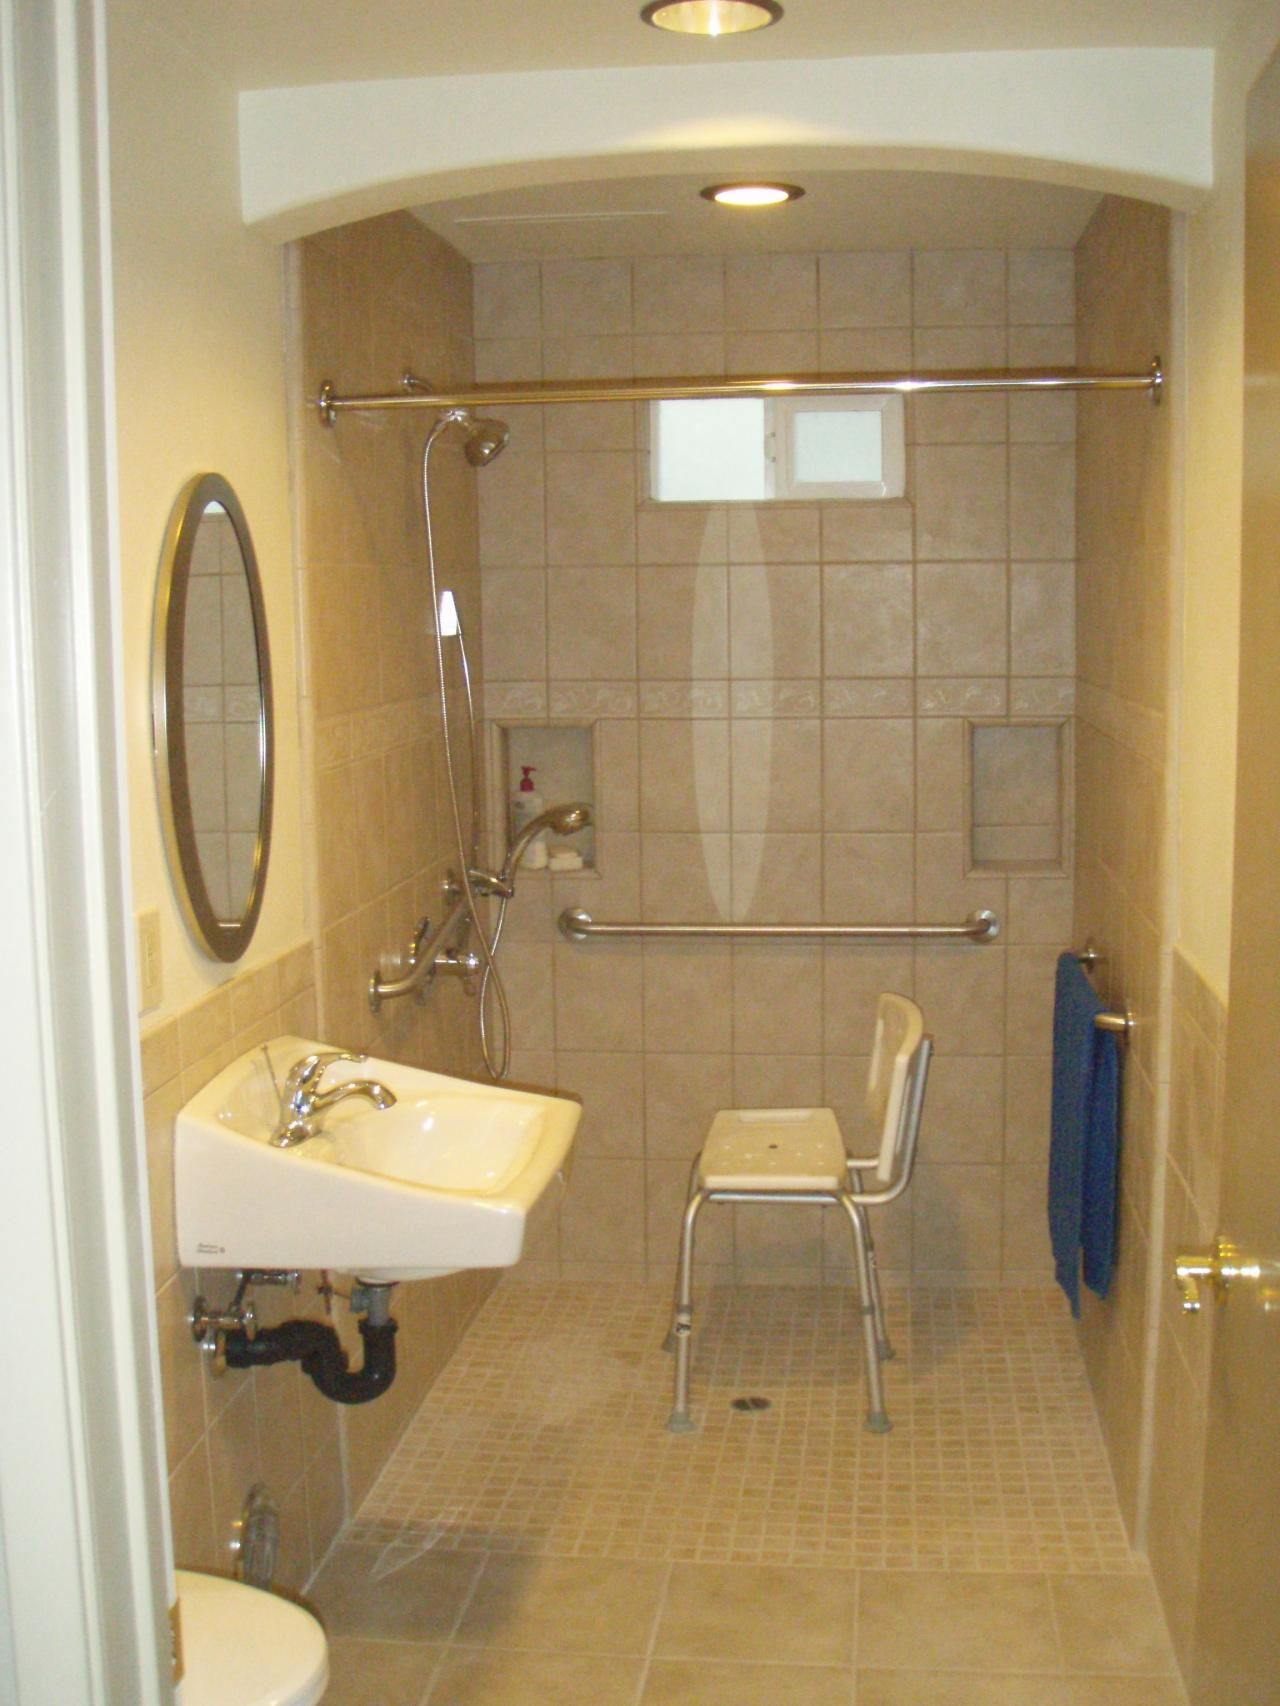 Check Out These Great Home Improvement Tips | Bathroom shower ...